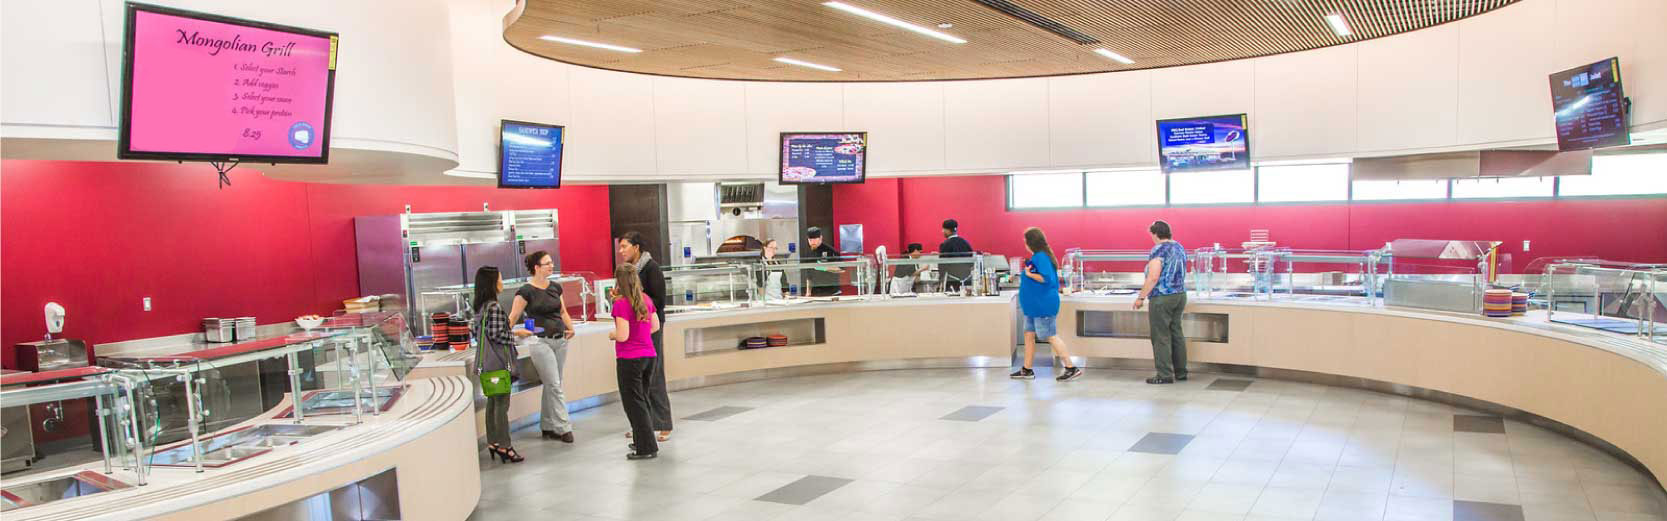 Staff and students mingle in the new Dine49 food court